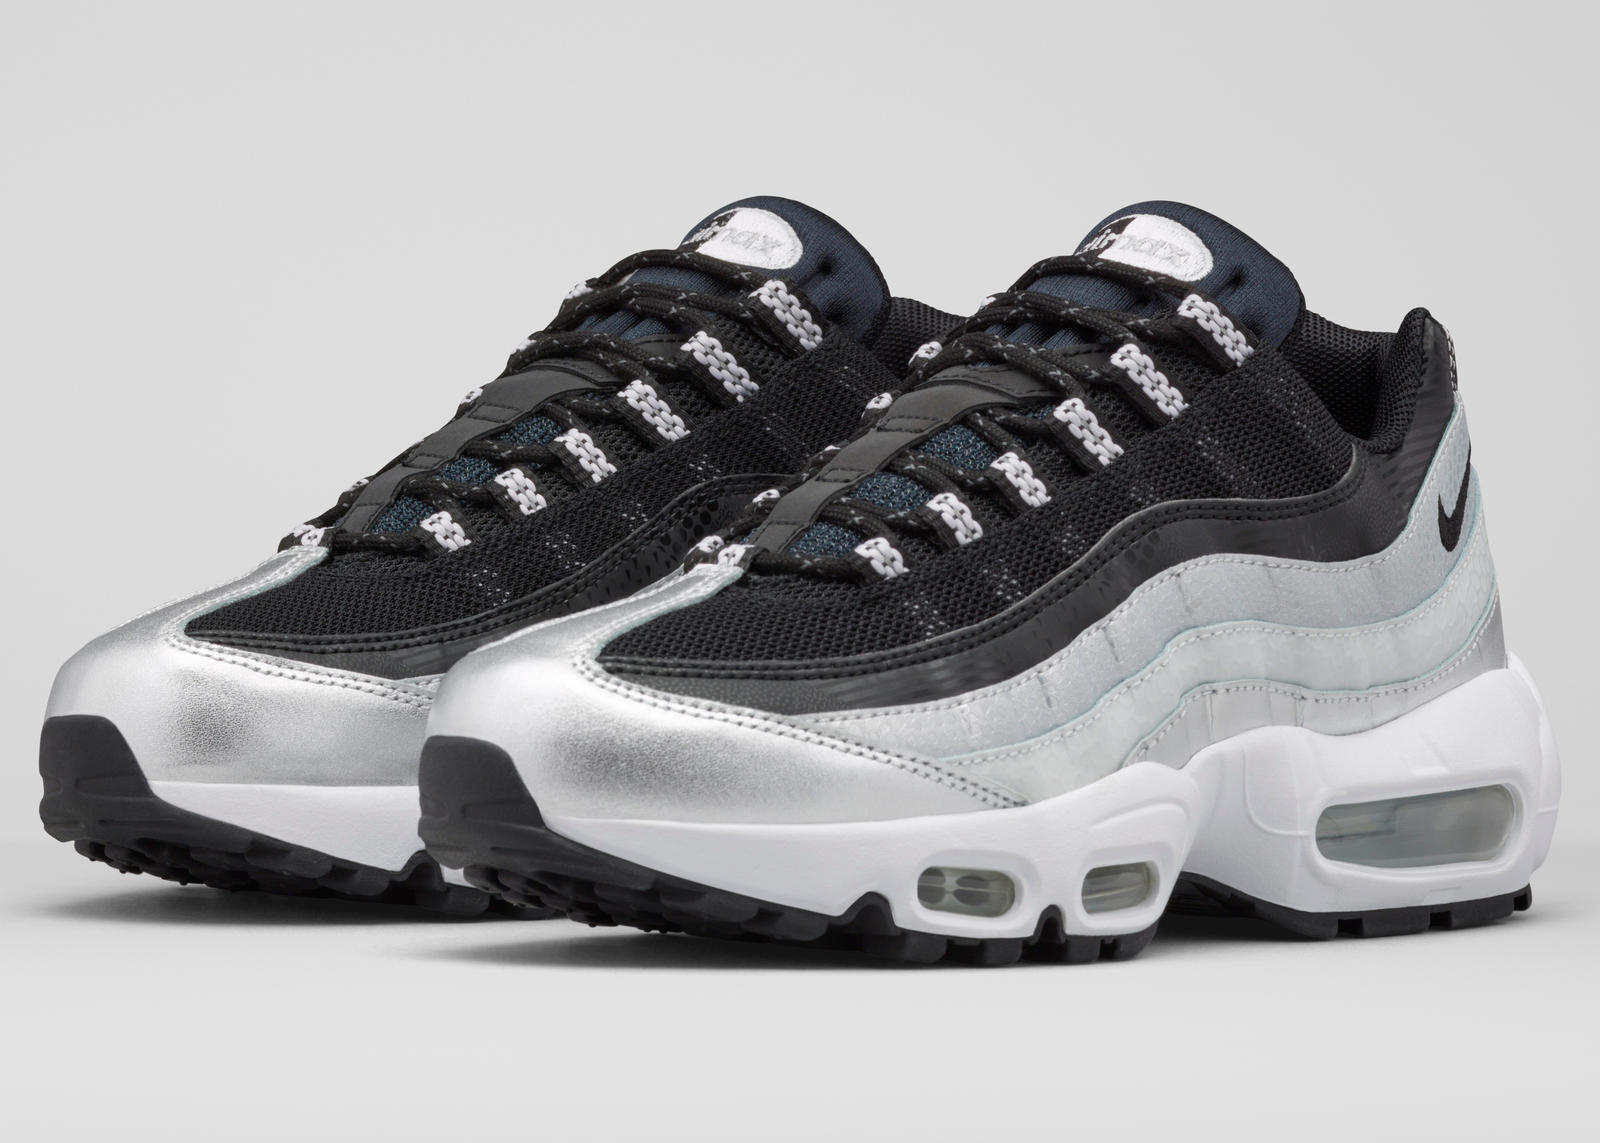 Nike Air Max 95 Premium Blue Sneakers 538416 401 Caliroots